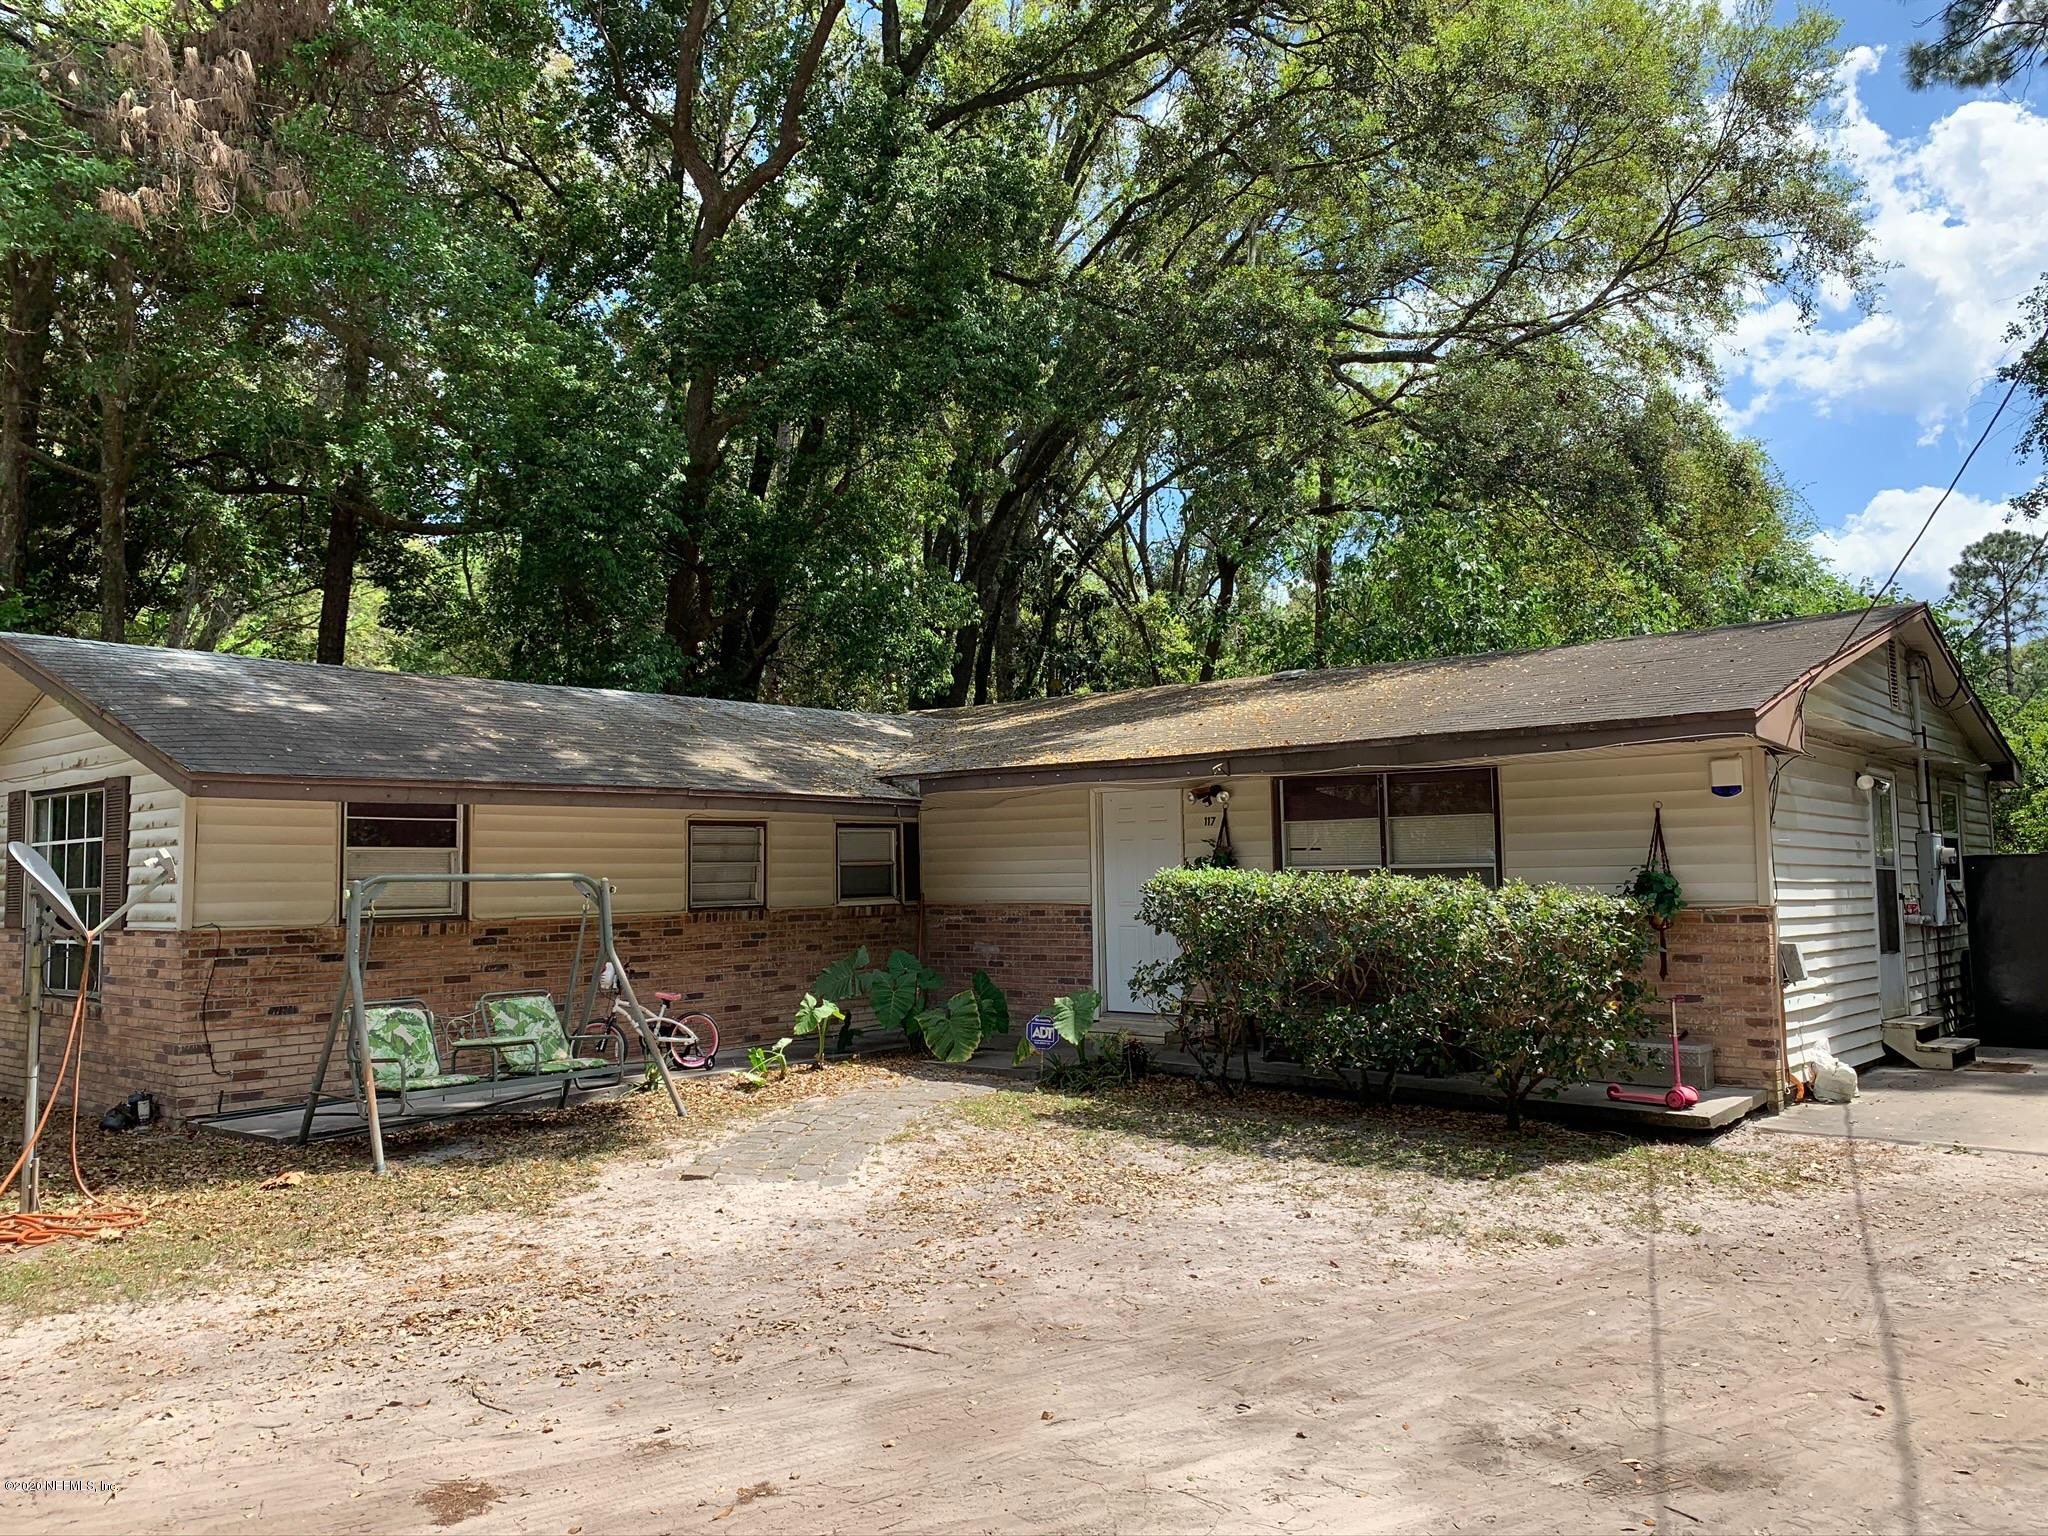 117 CROSBY, PALATKA, FLORIDA 32177, 3 Bedrooms Bedrooms, ,1 BathroomBathrooms,Residential,For sale,CROSBY,1050996